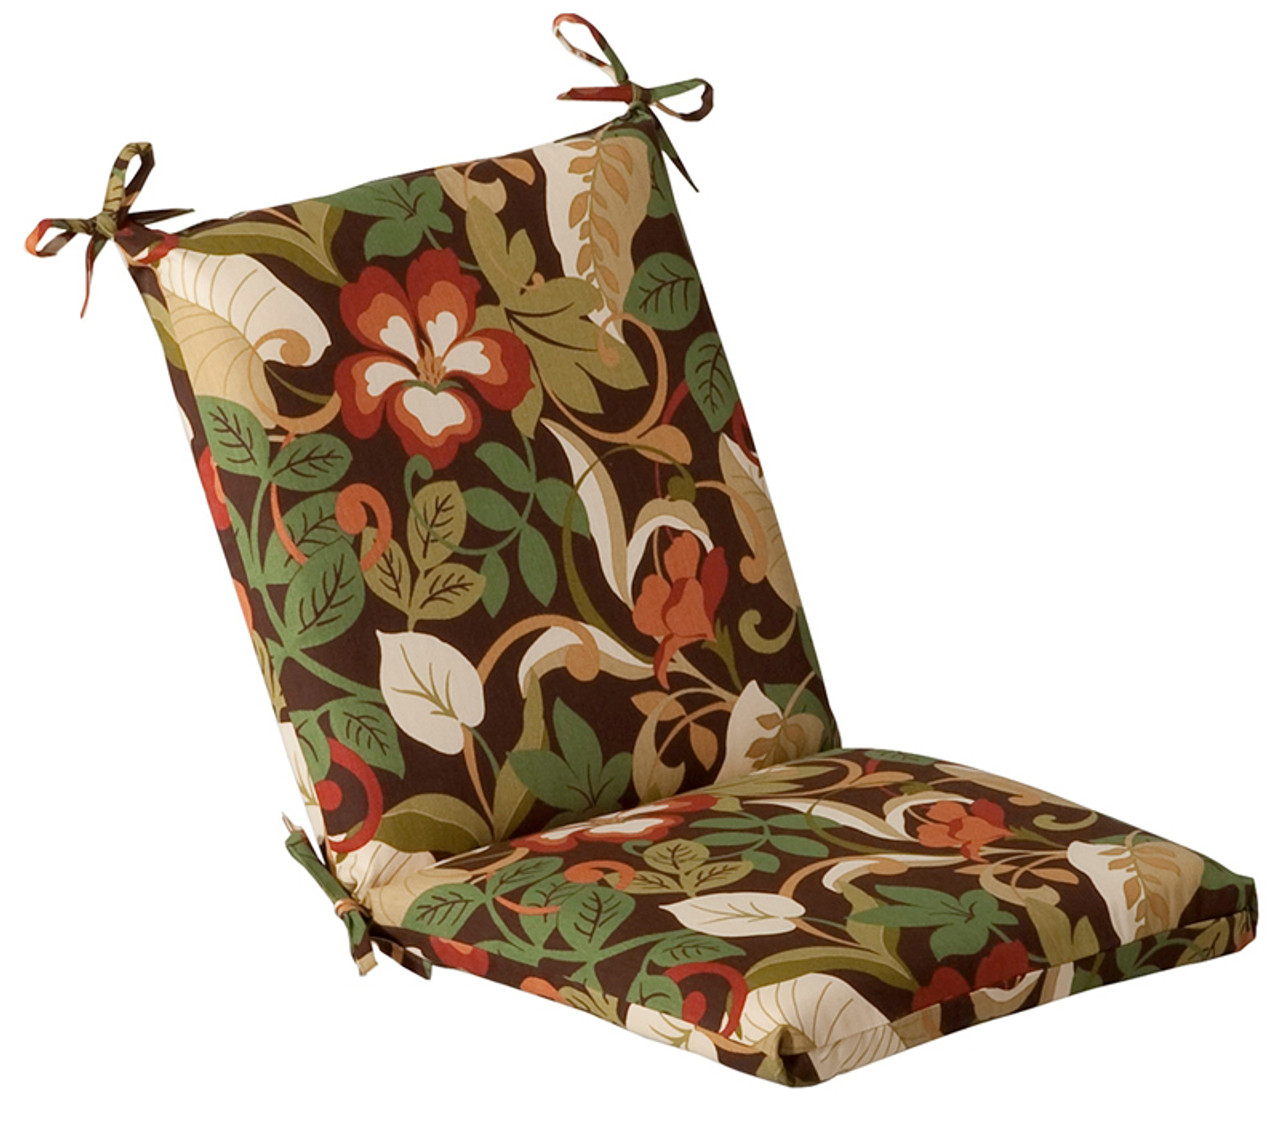 green and white floral outdoor patio furniture corner chair cushion 36 5